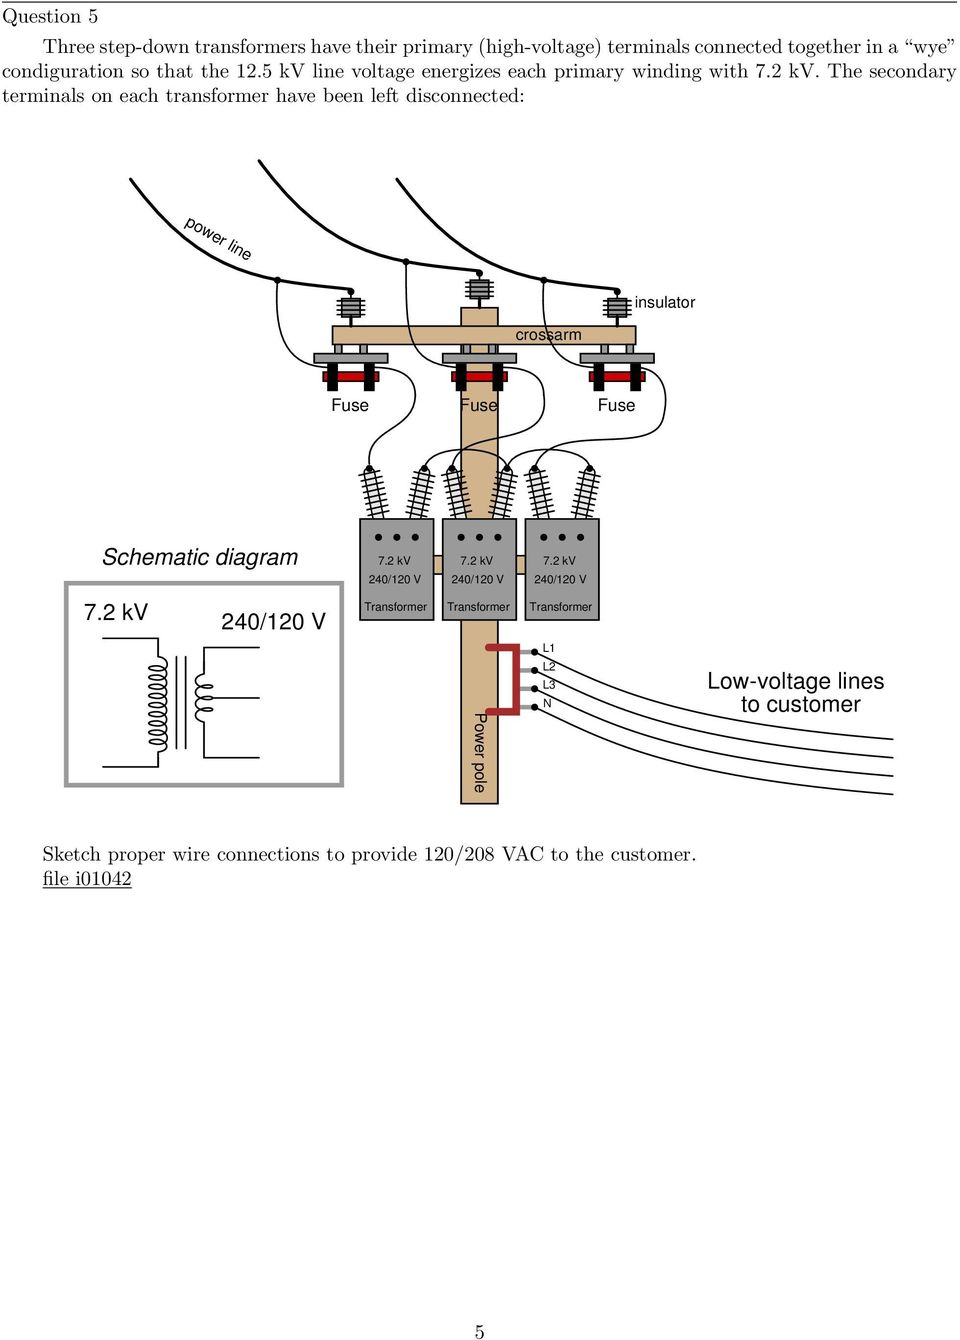 hight resolution of the secondary terminals on each transformer have been left disconnected power line crossarm insulator schematic